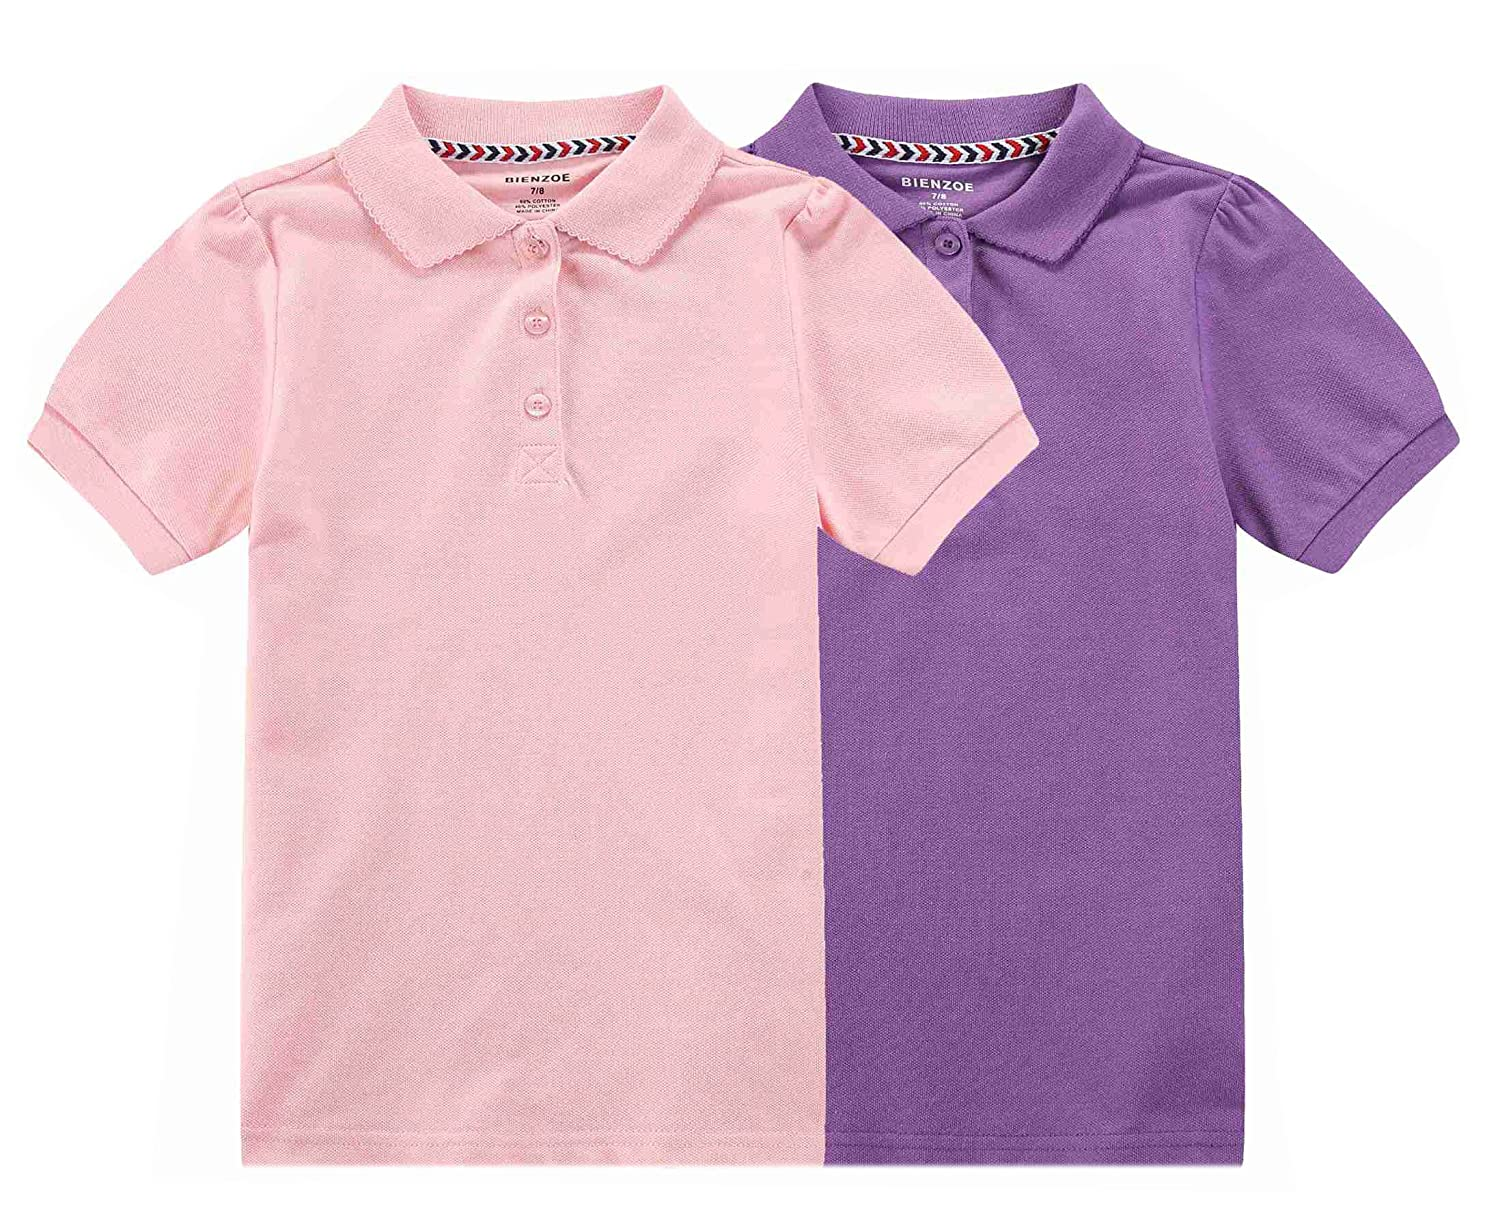 Bienzoe Girl's Antimicrobial Breathable Short Sleeve Polo 2pcs Pack